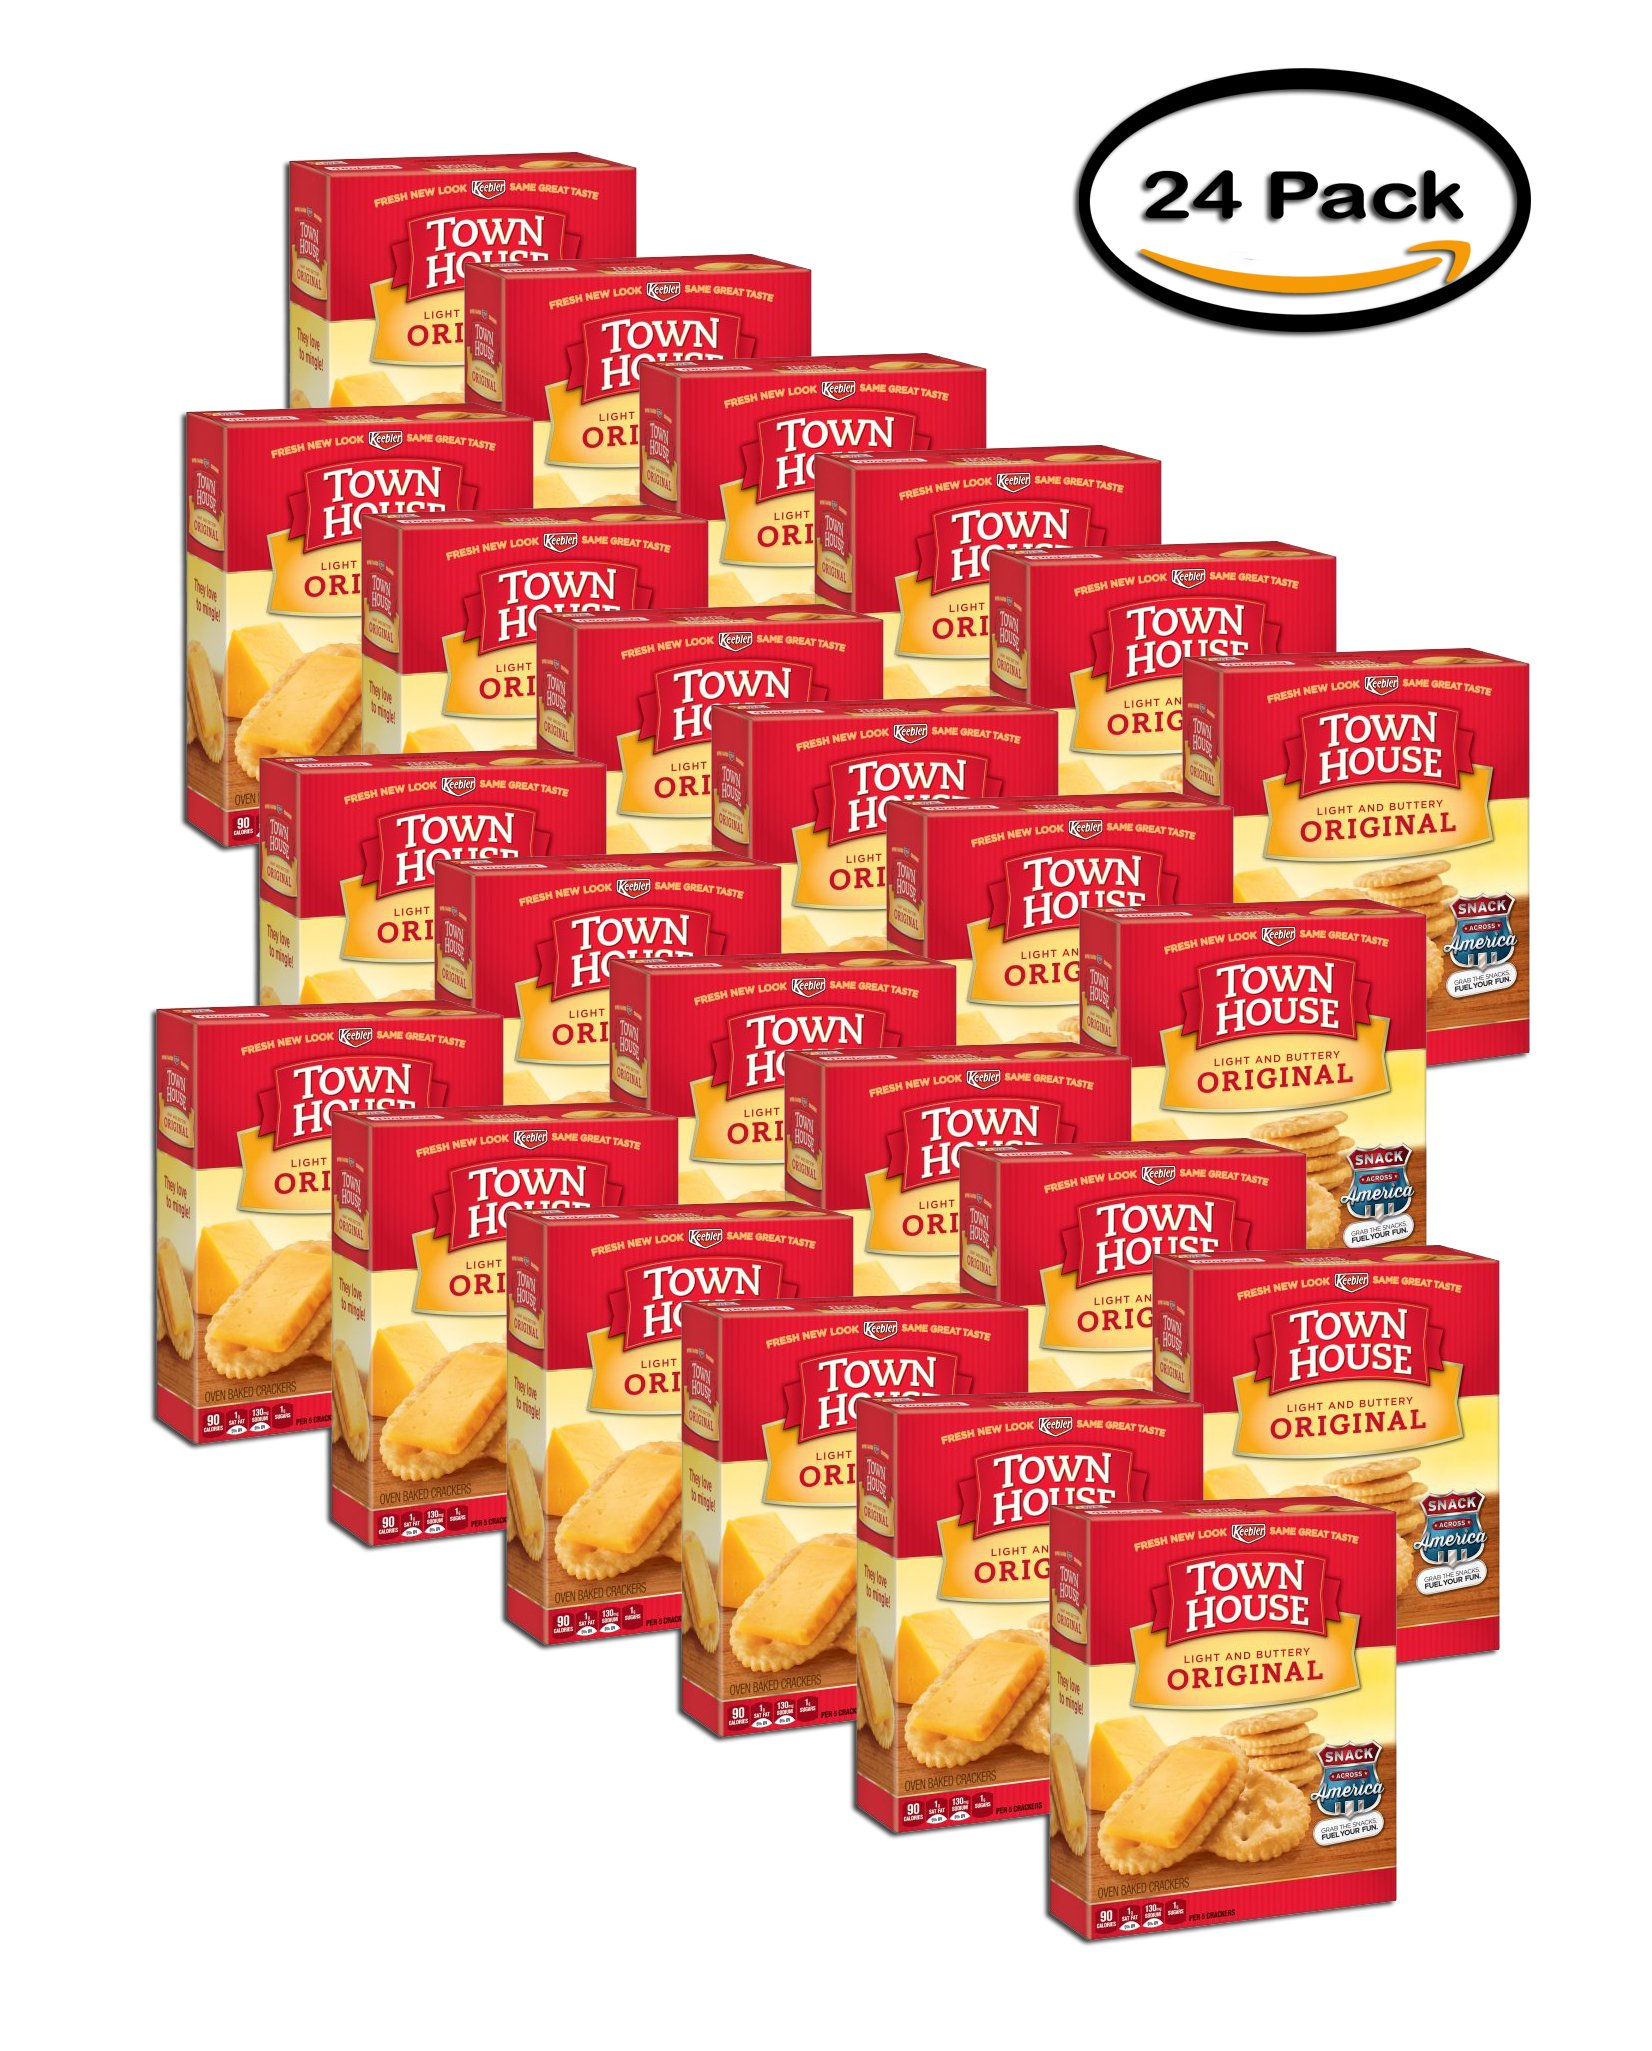 PACK OF 24 - Town House Crackers Original Light and Buttery, 13.8 OZ